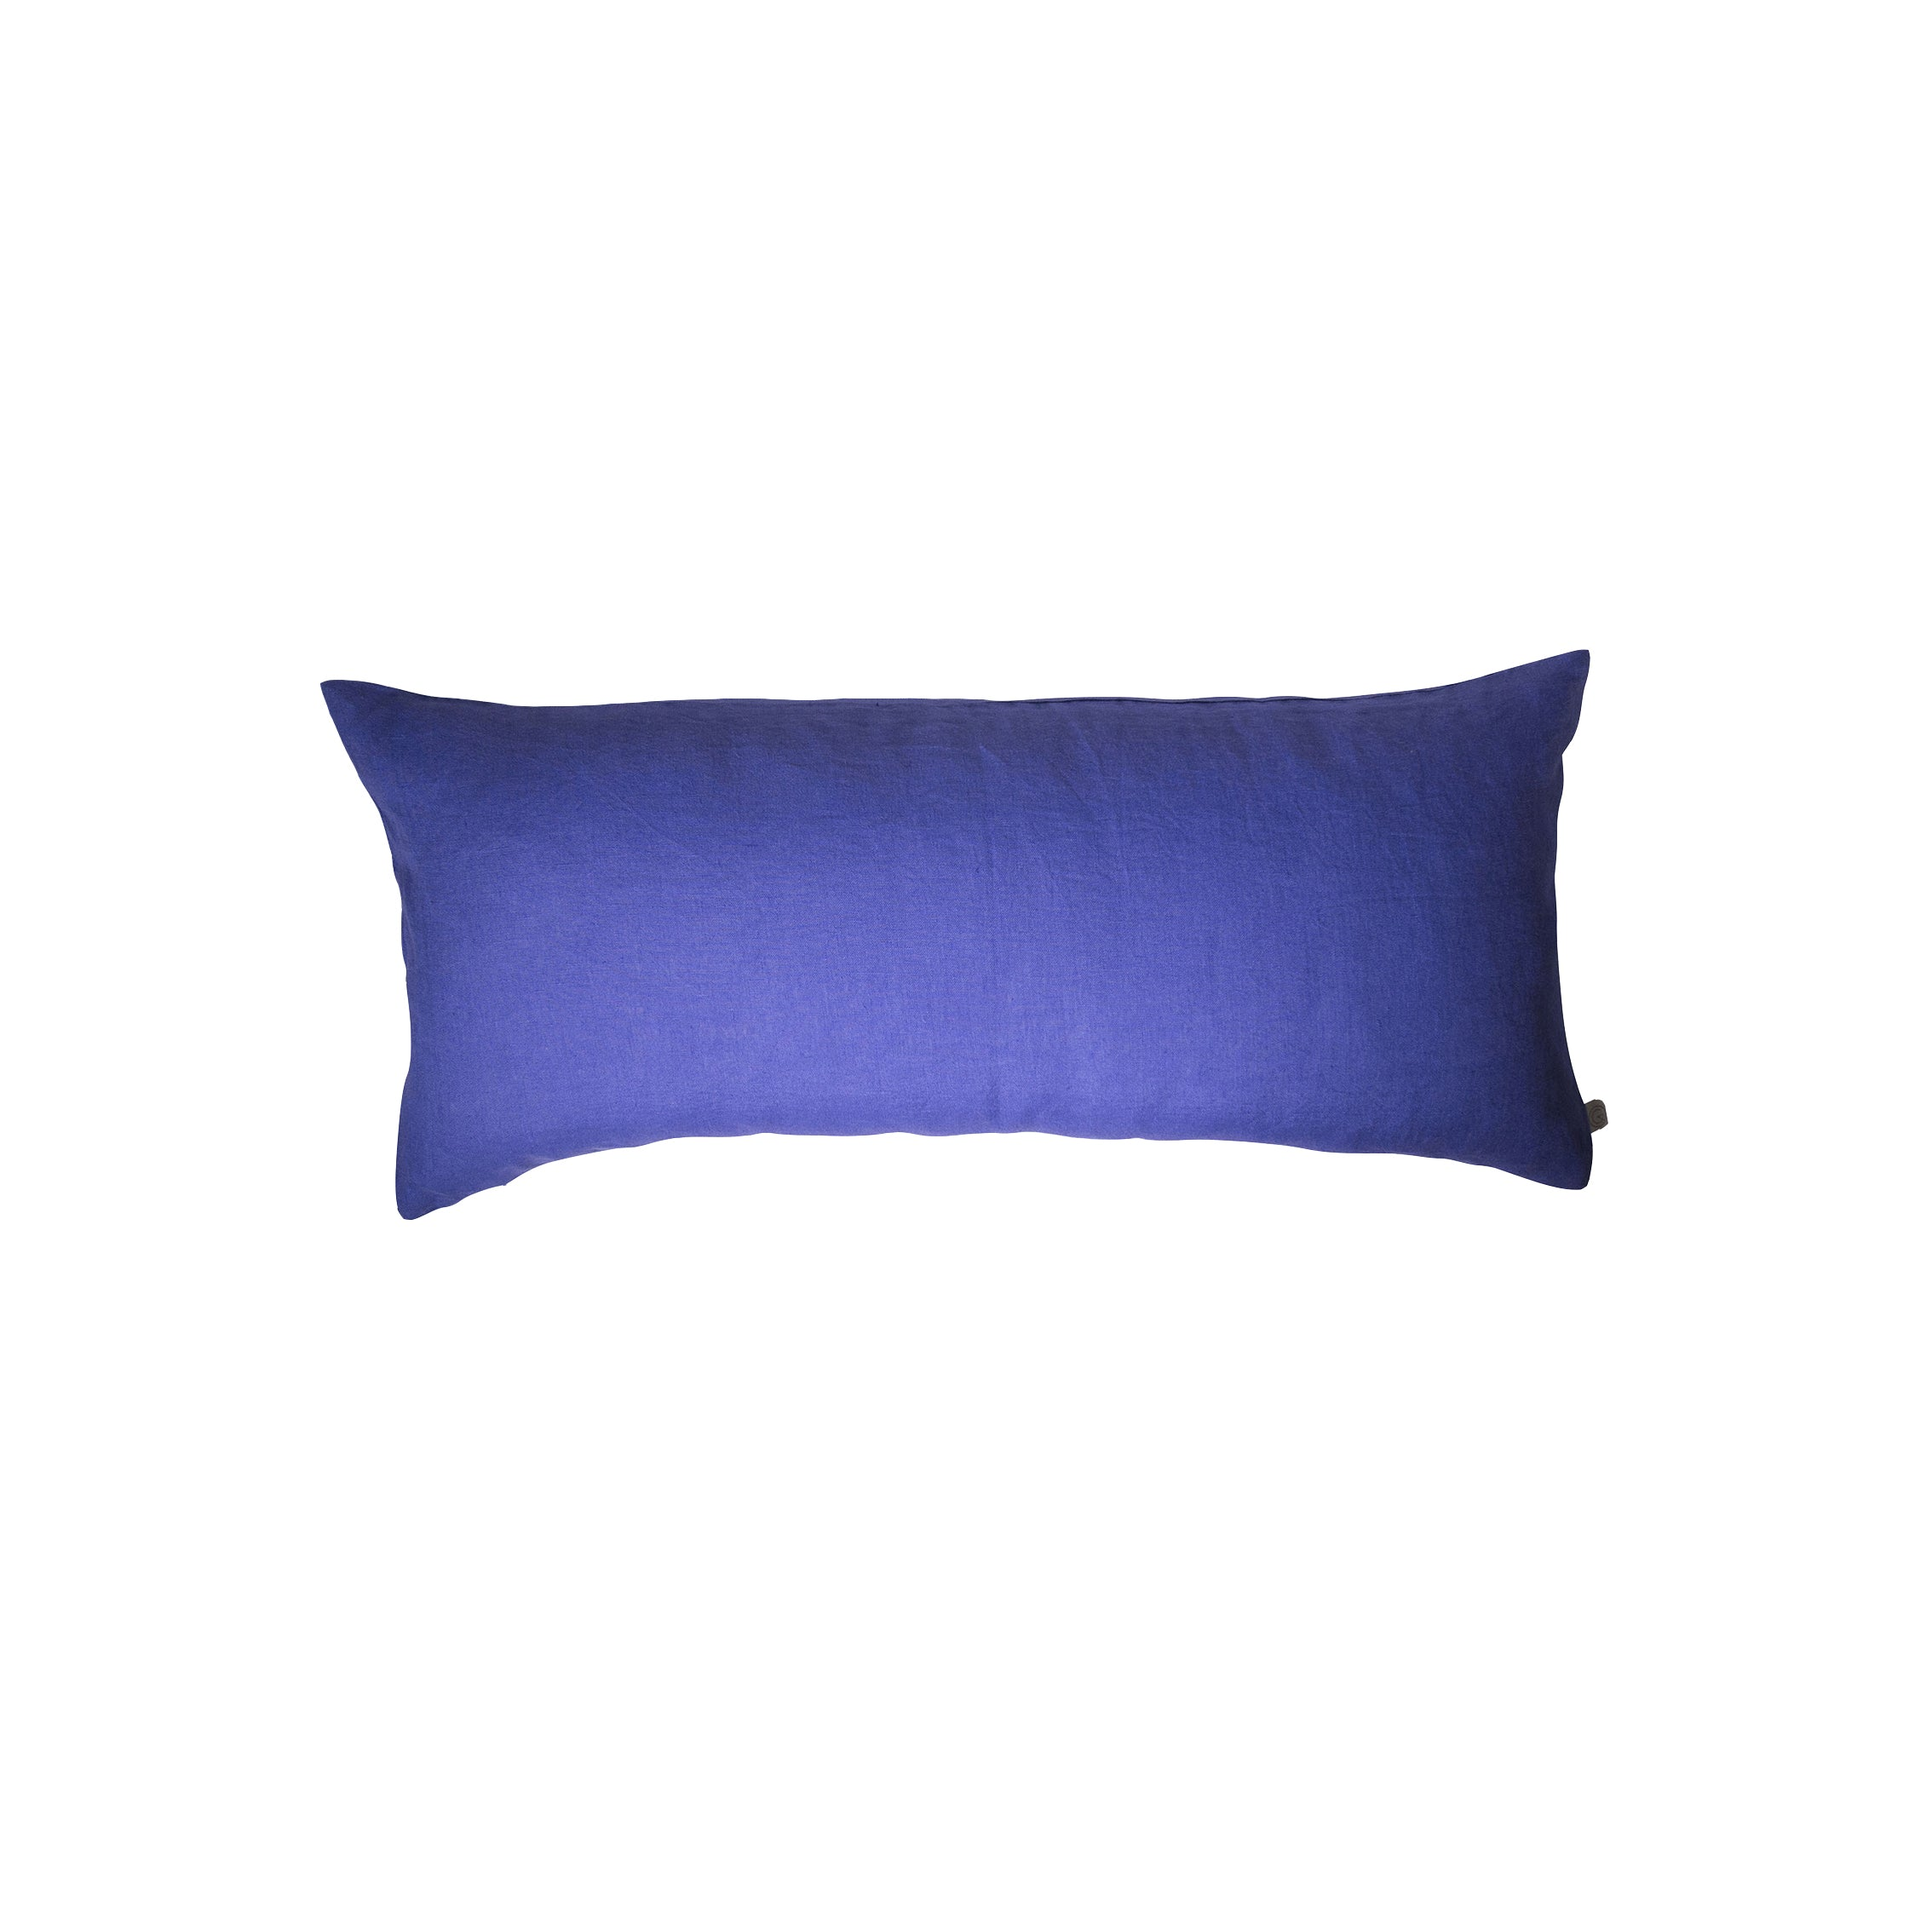 Cushion - LINEN (Blue)